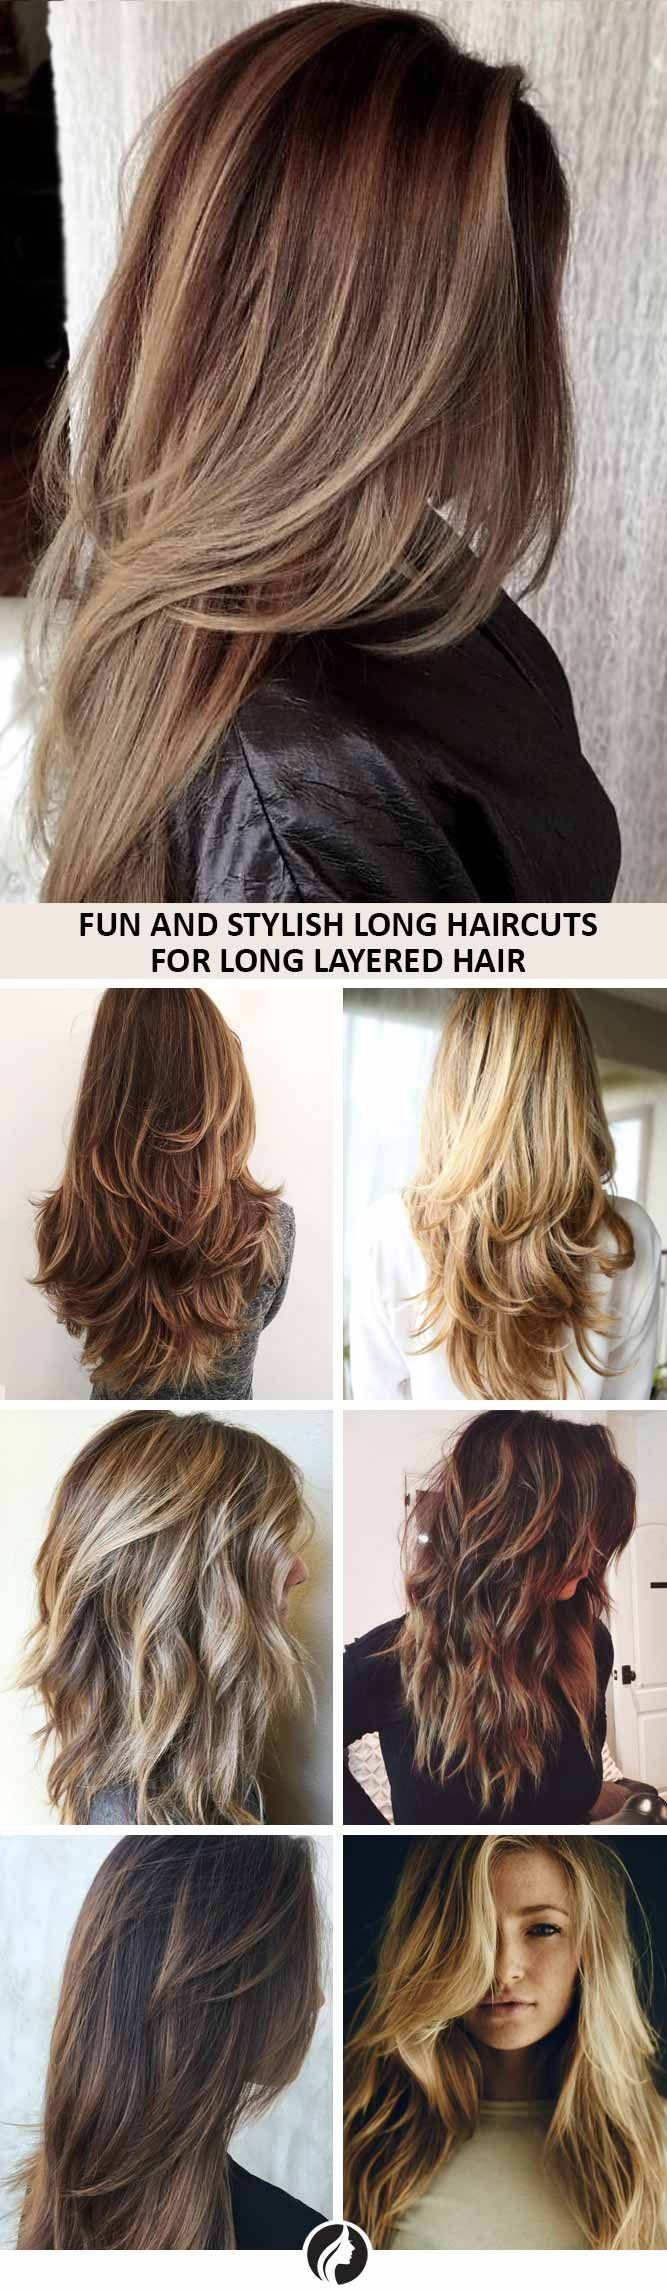 Image is part of v shaped hairstyle pictureslong layered haircuts - 21 Long Haircuts With Layers For Every Type Of Texture